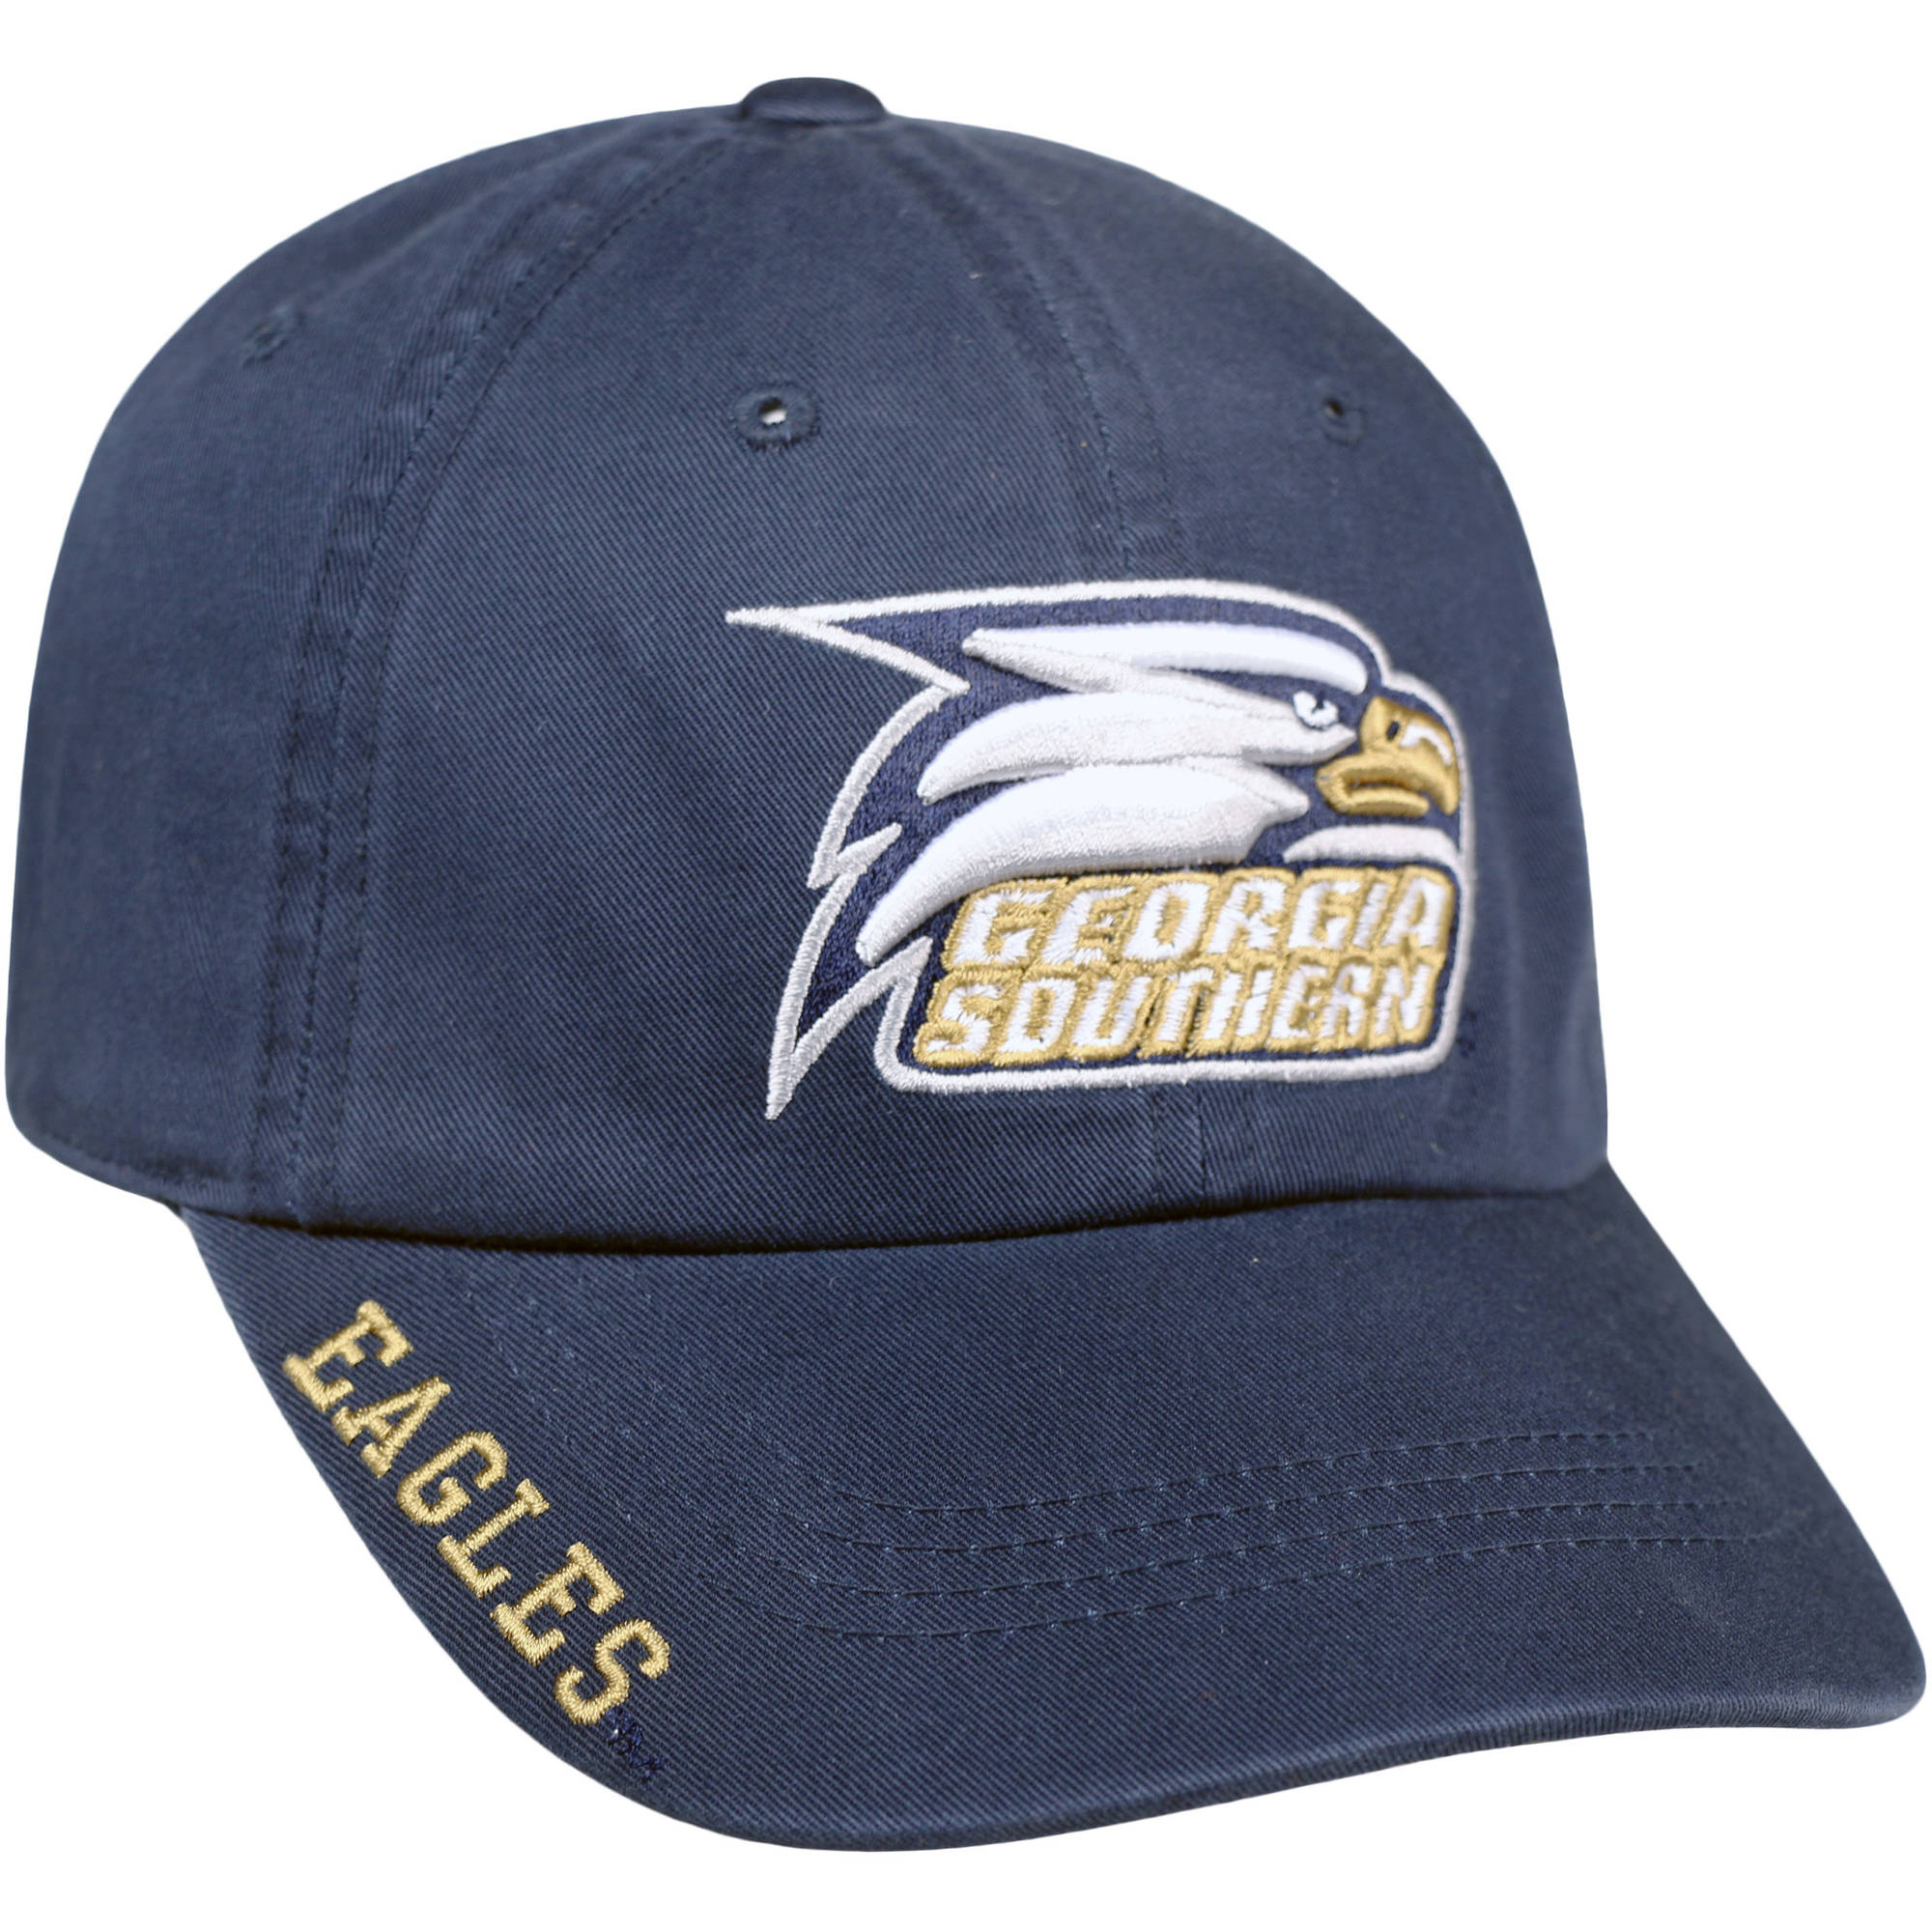 NCAA Men's Georgia Southern Eagles Home Cap